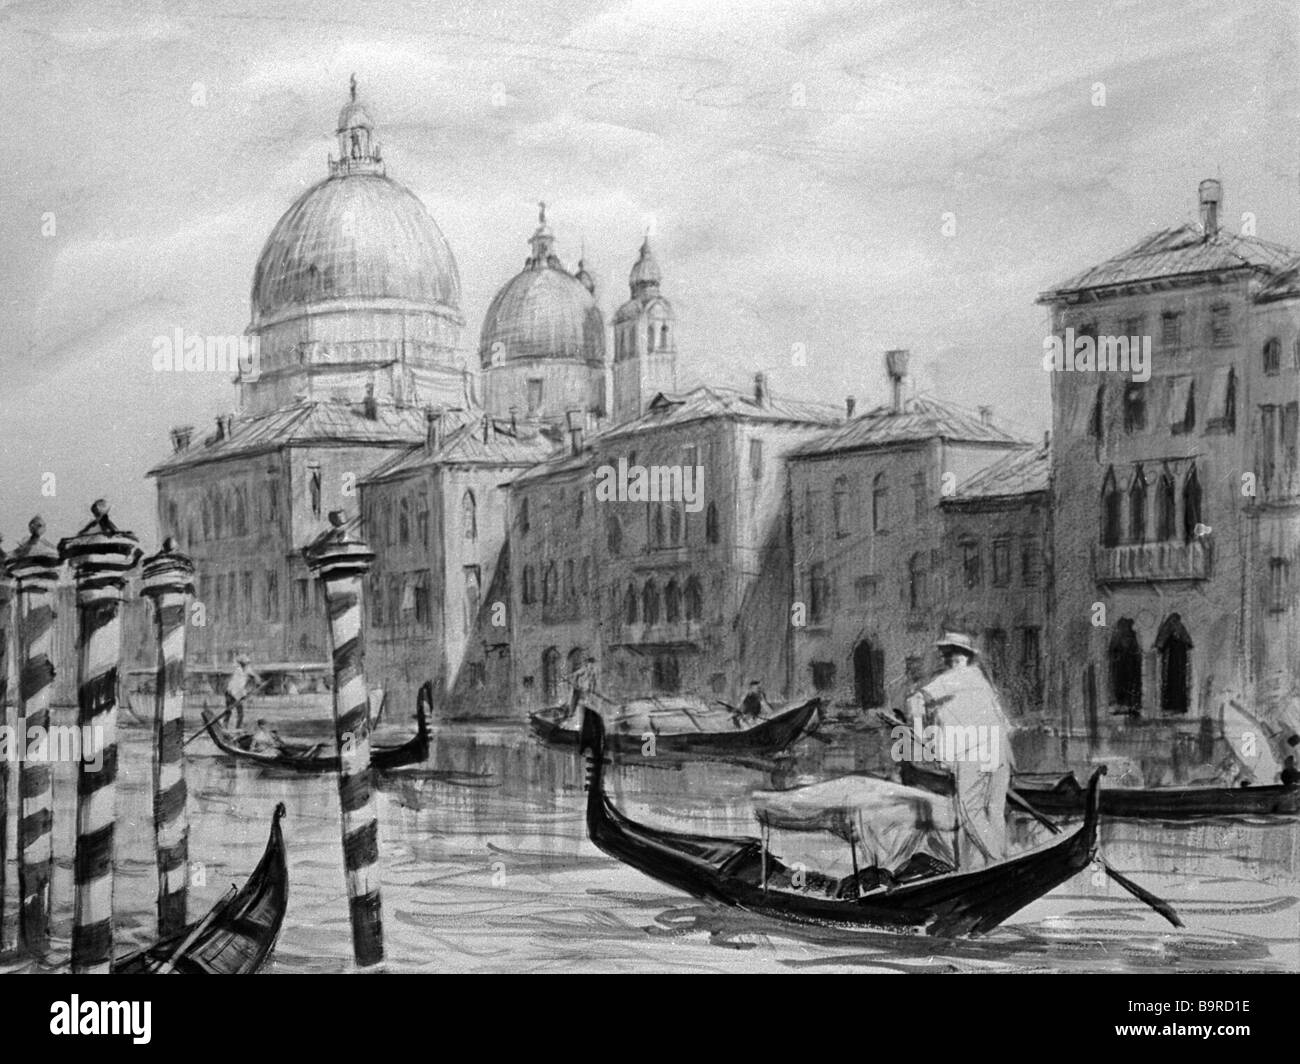 Dmitri Shmarinov The Grand Canal in Venice - Stock Image